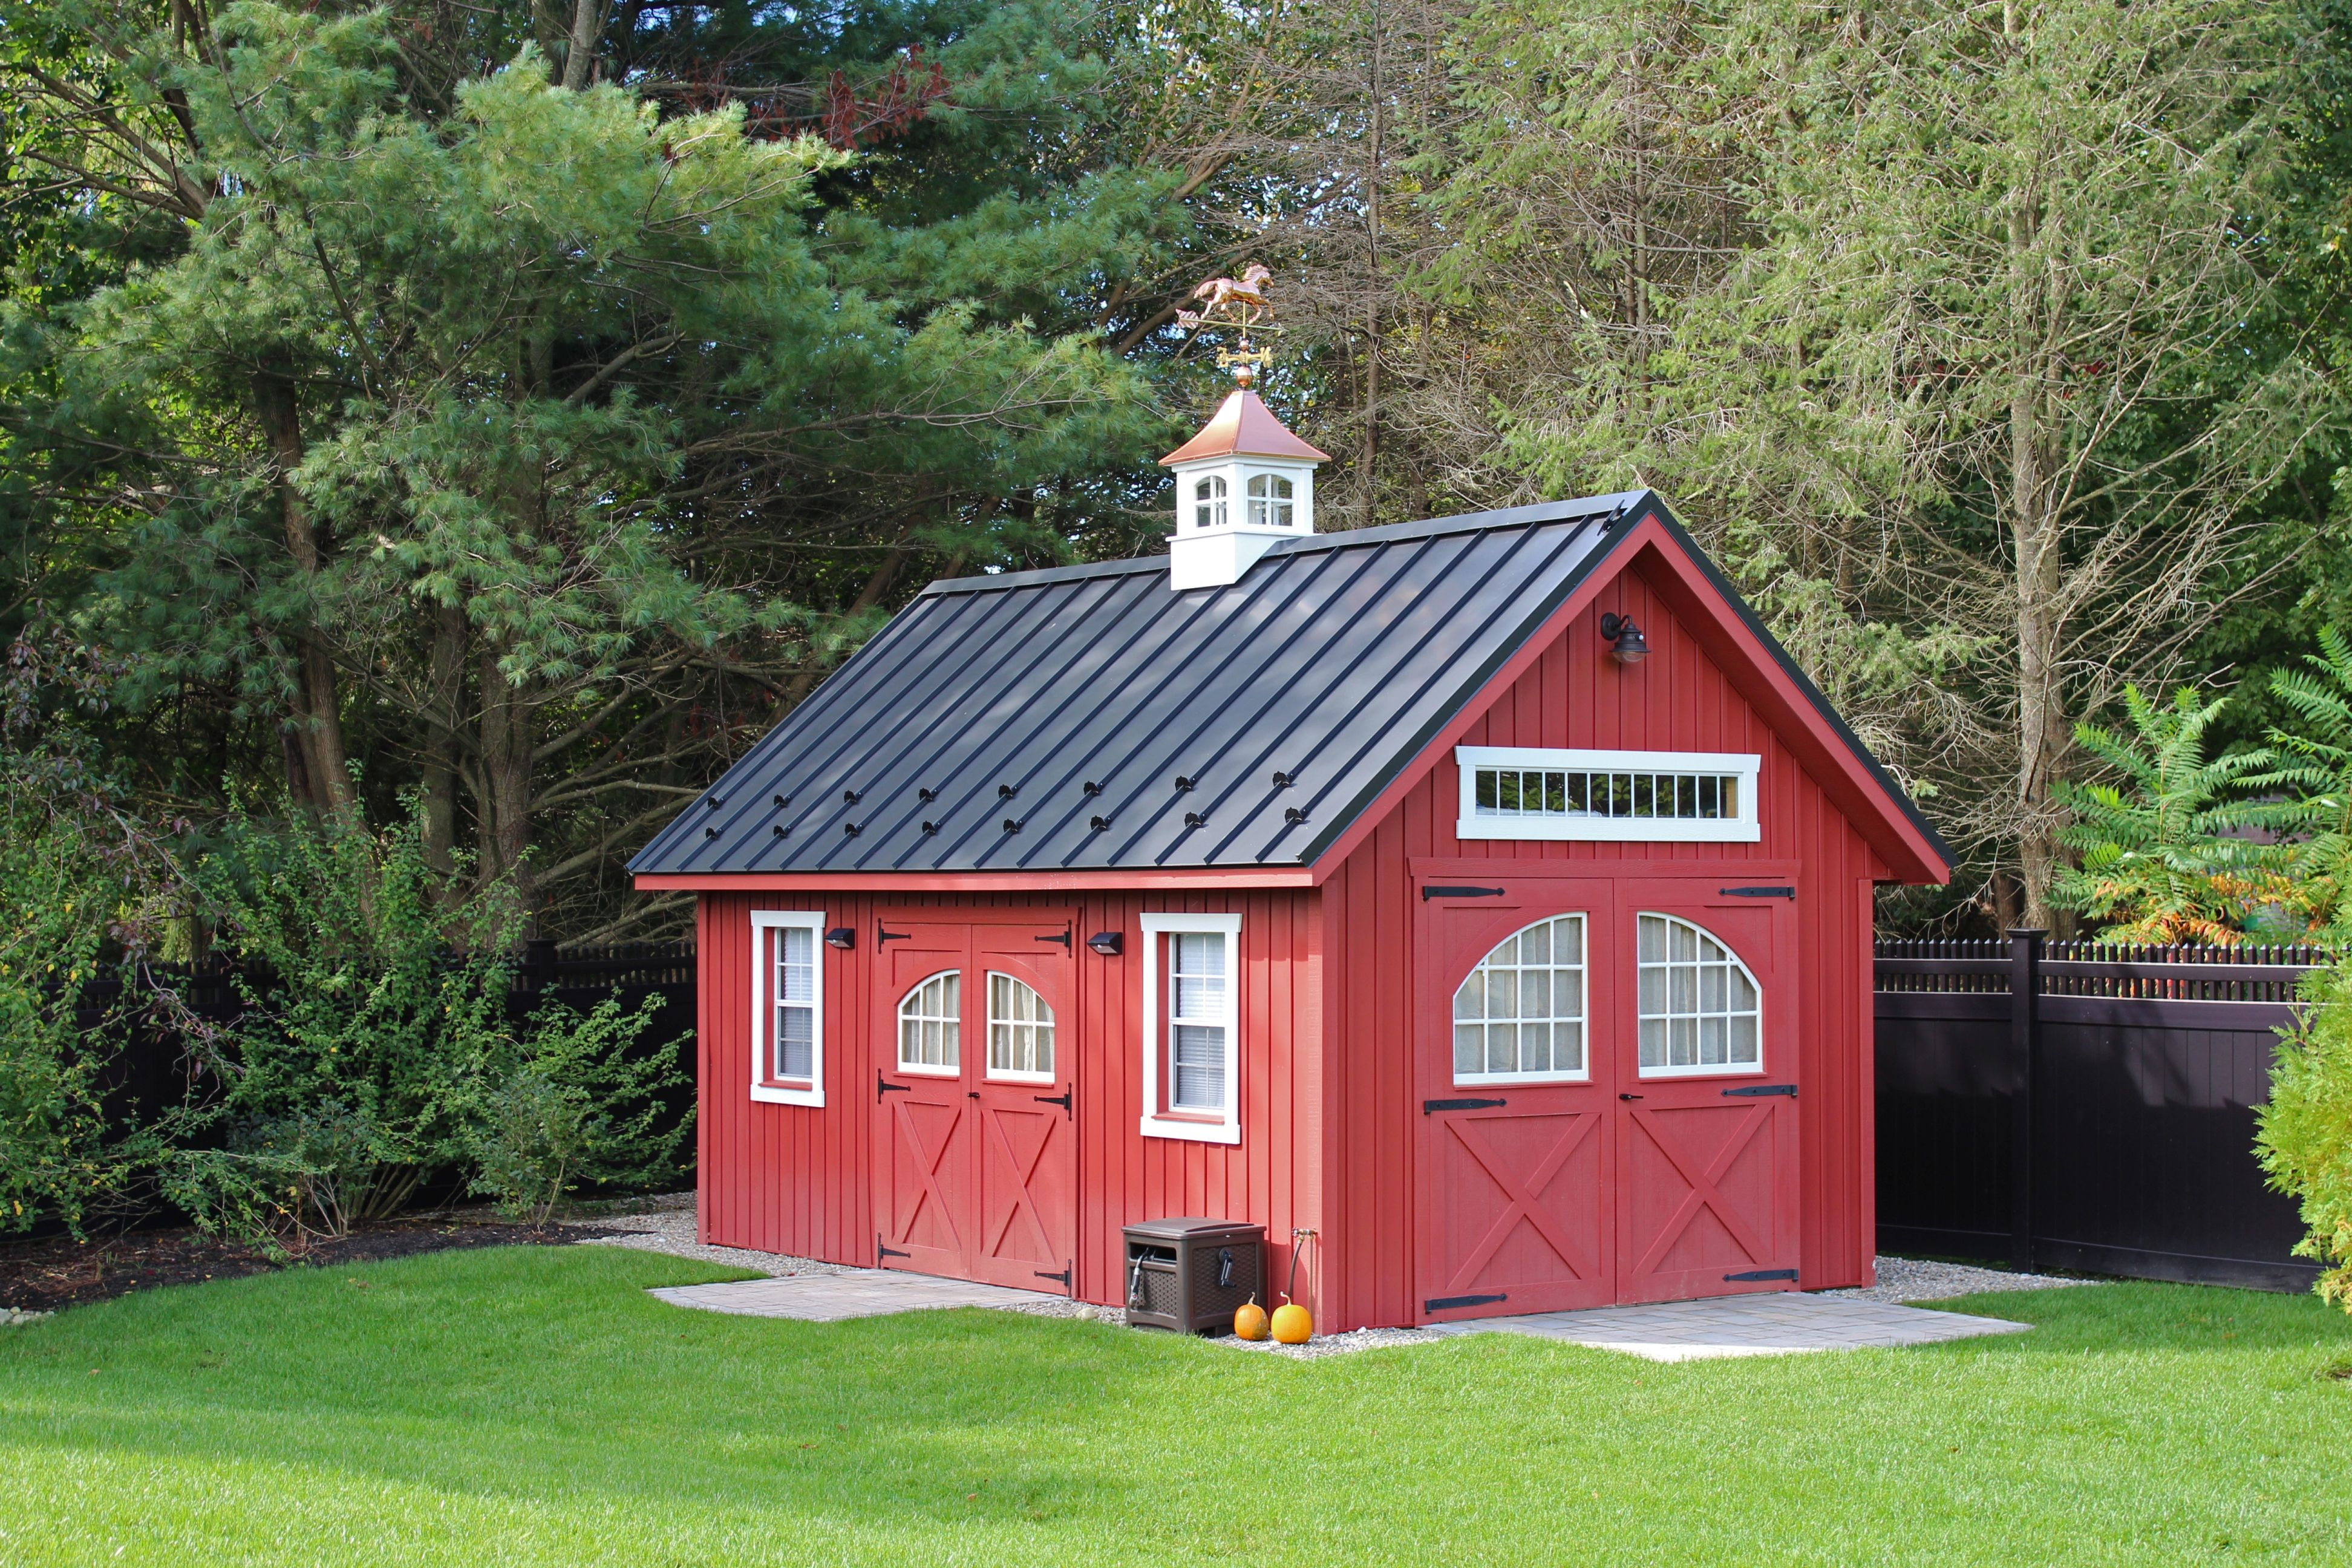 12 X20 Vinyl Board Batten New England Barn Visit Our Website At Www Lappstructures Com For More Information Or To Place Your Barns Sheds Vinyl Sheds Shed